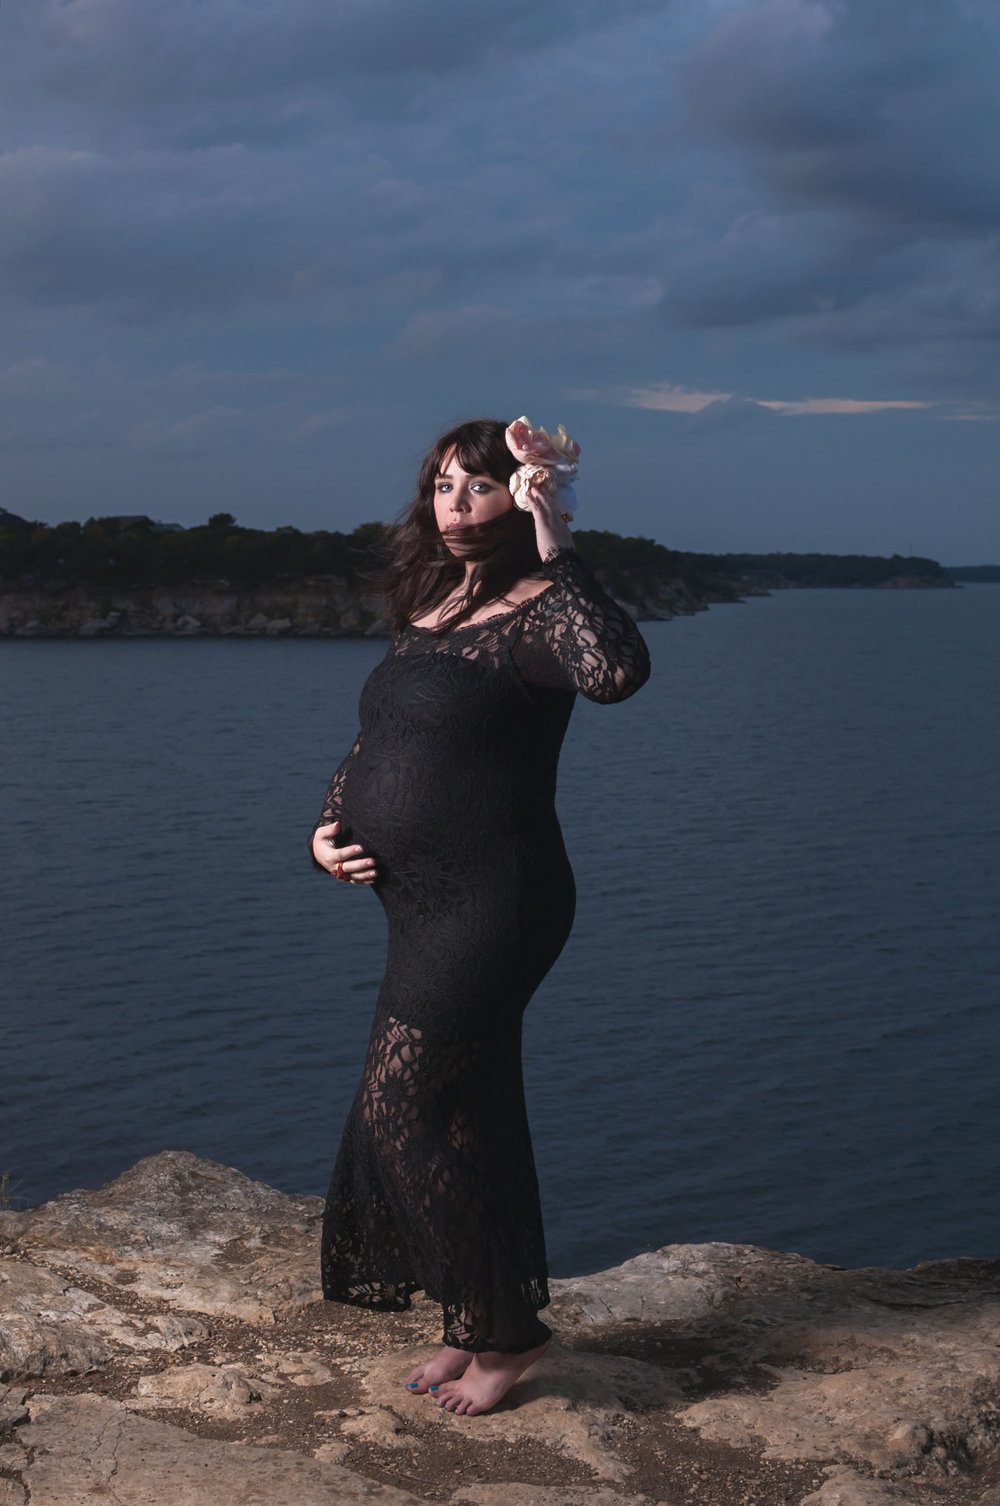 Bella Sol Portraits Maternity Portraits Session On Location Outdoors